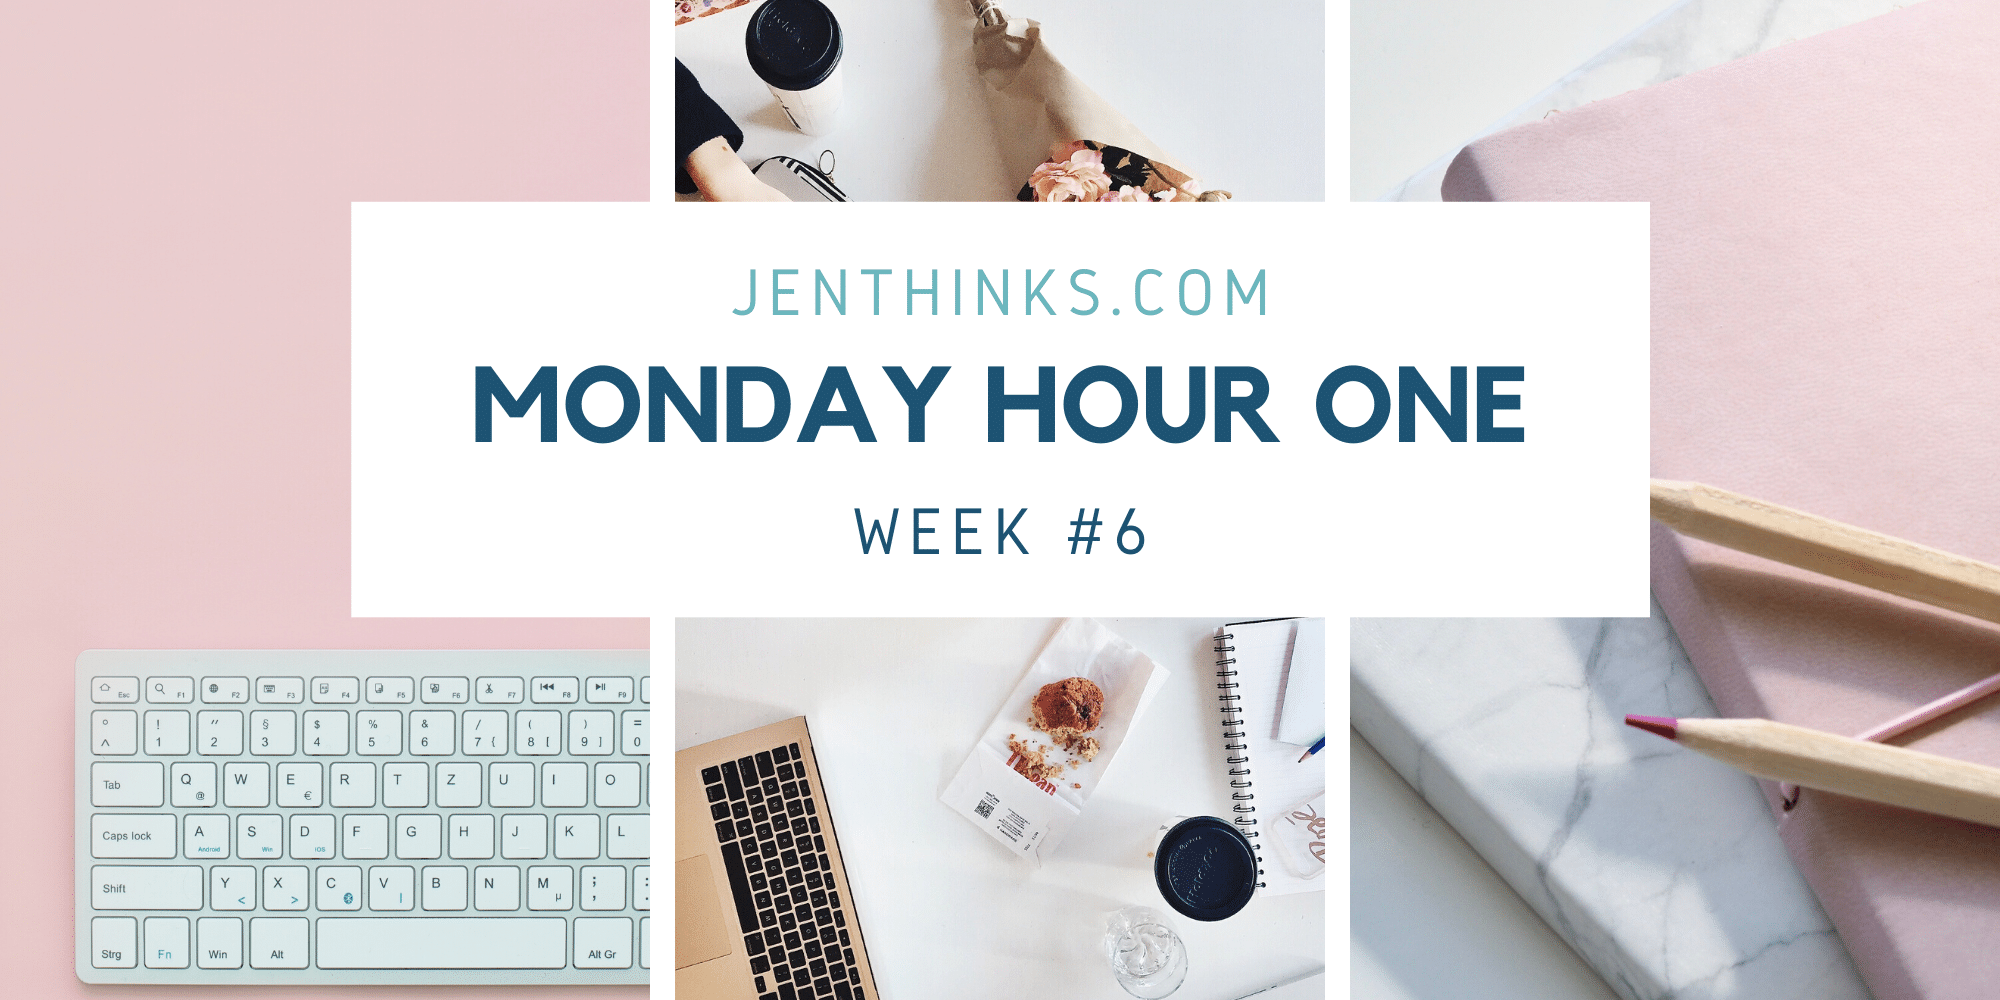 Monday hour one